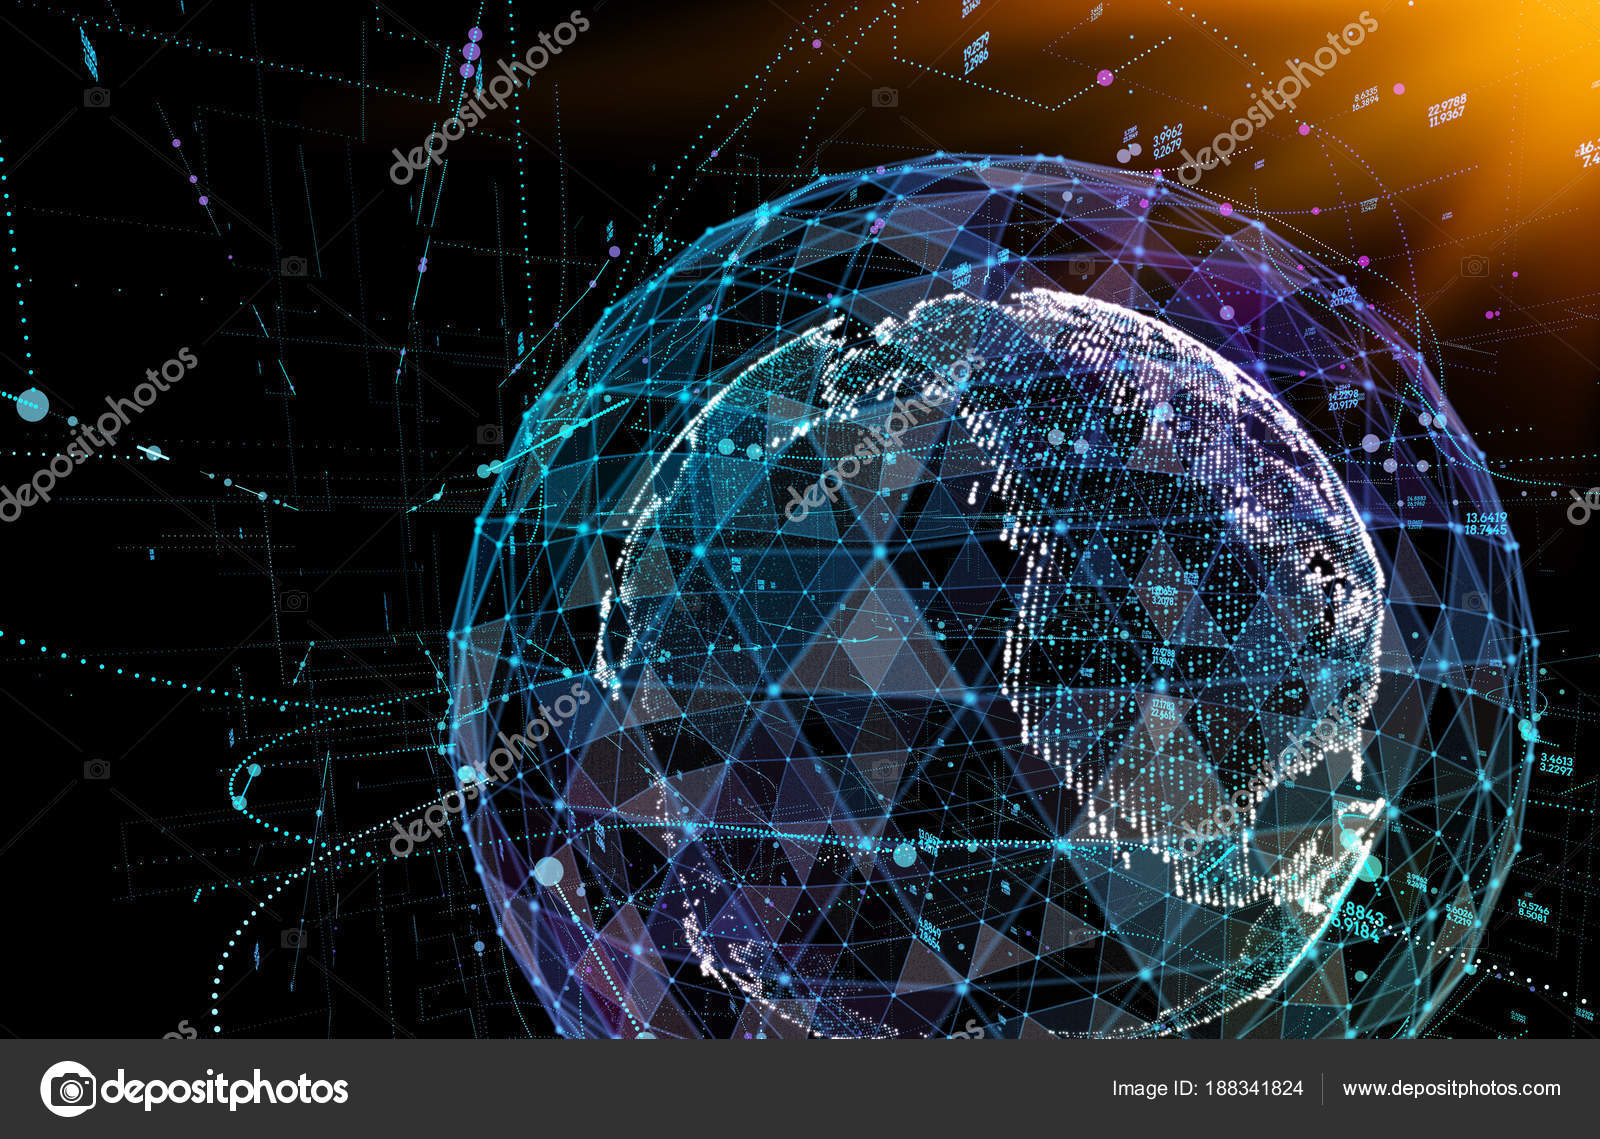 Connections global communication in the world map view on dark space connections global communication in the world map view on dark space background 3d illustration gumiabroncs Gallery